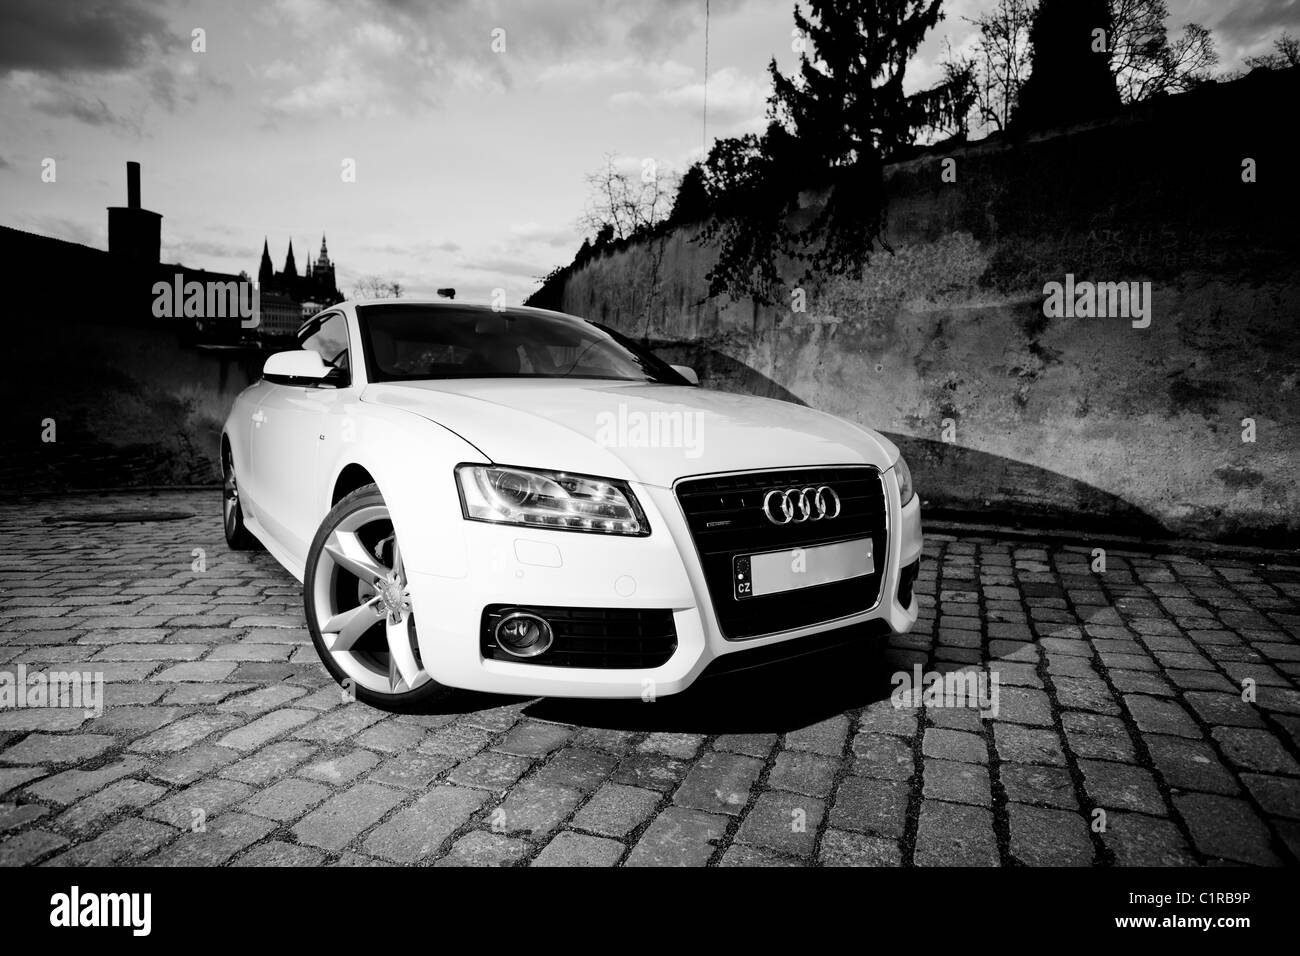 White Sports Car parked in the street - Stock Image